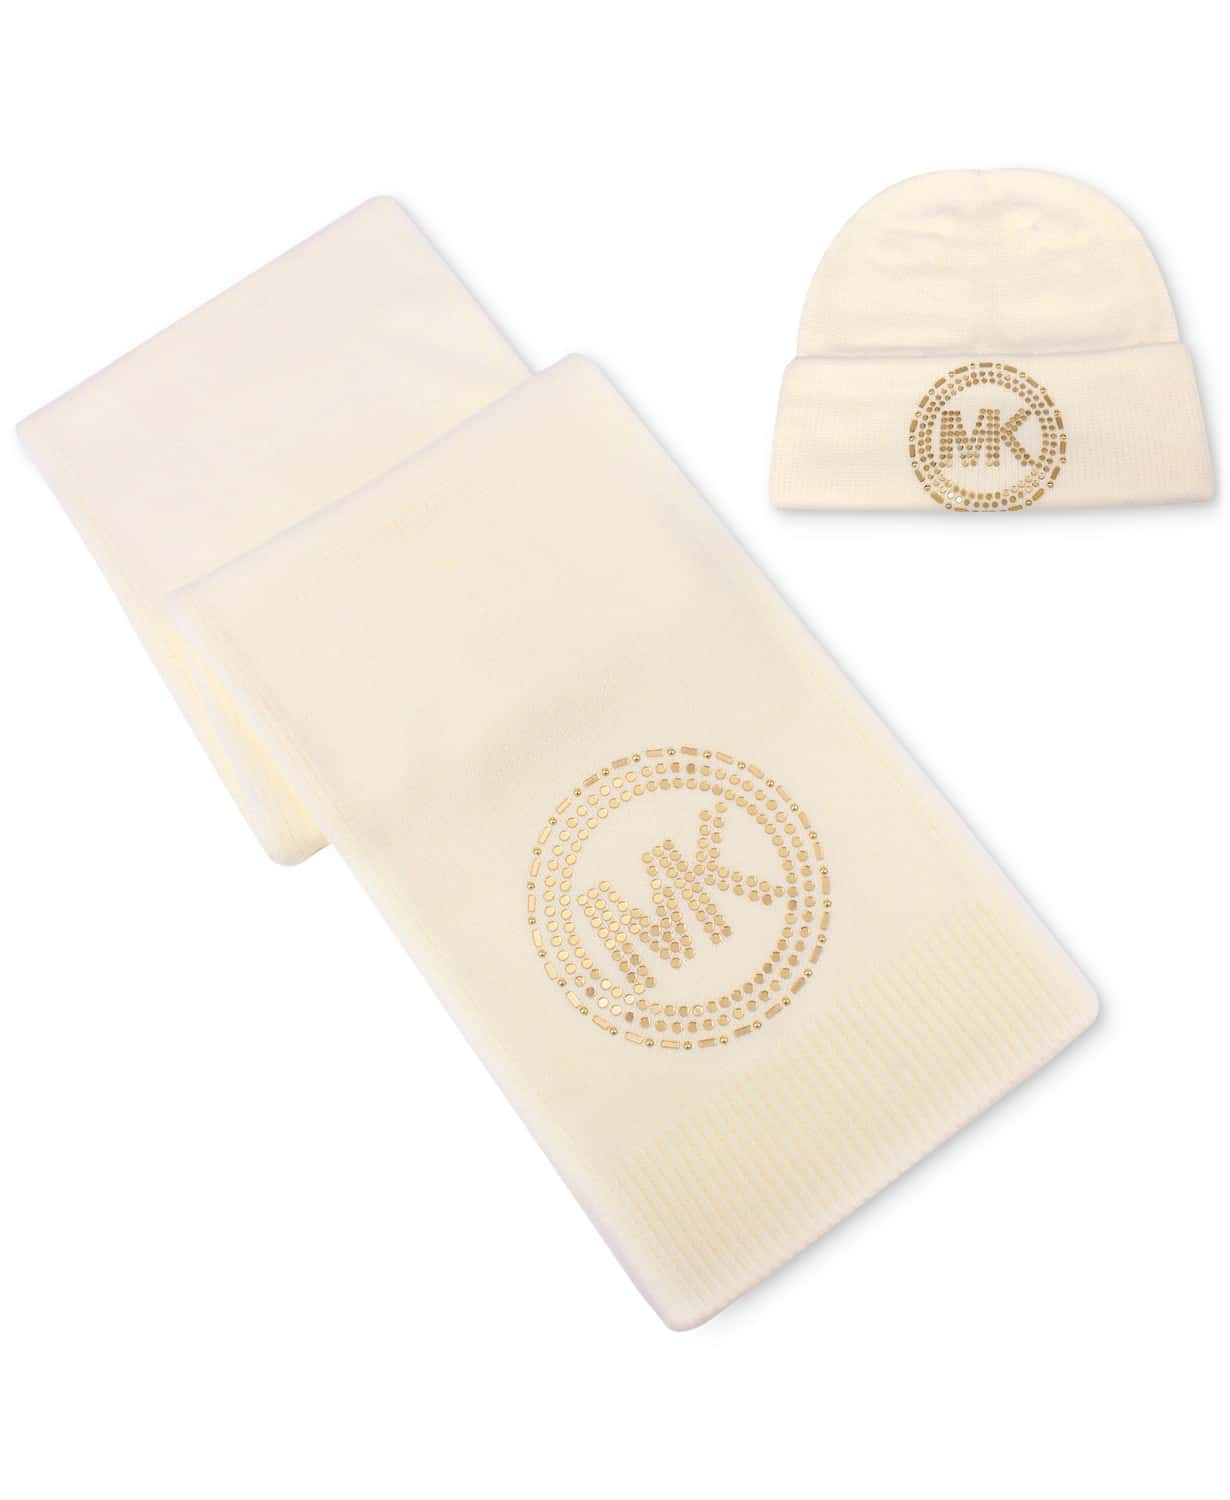 Michael Michael Kors' matching set brings a little bling and glamour to your looks with a hat and belly band finished with a mirror-studded MK logo.